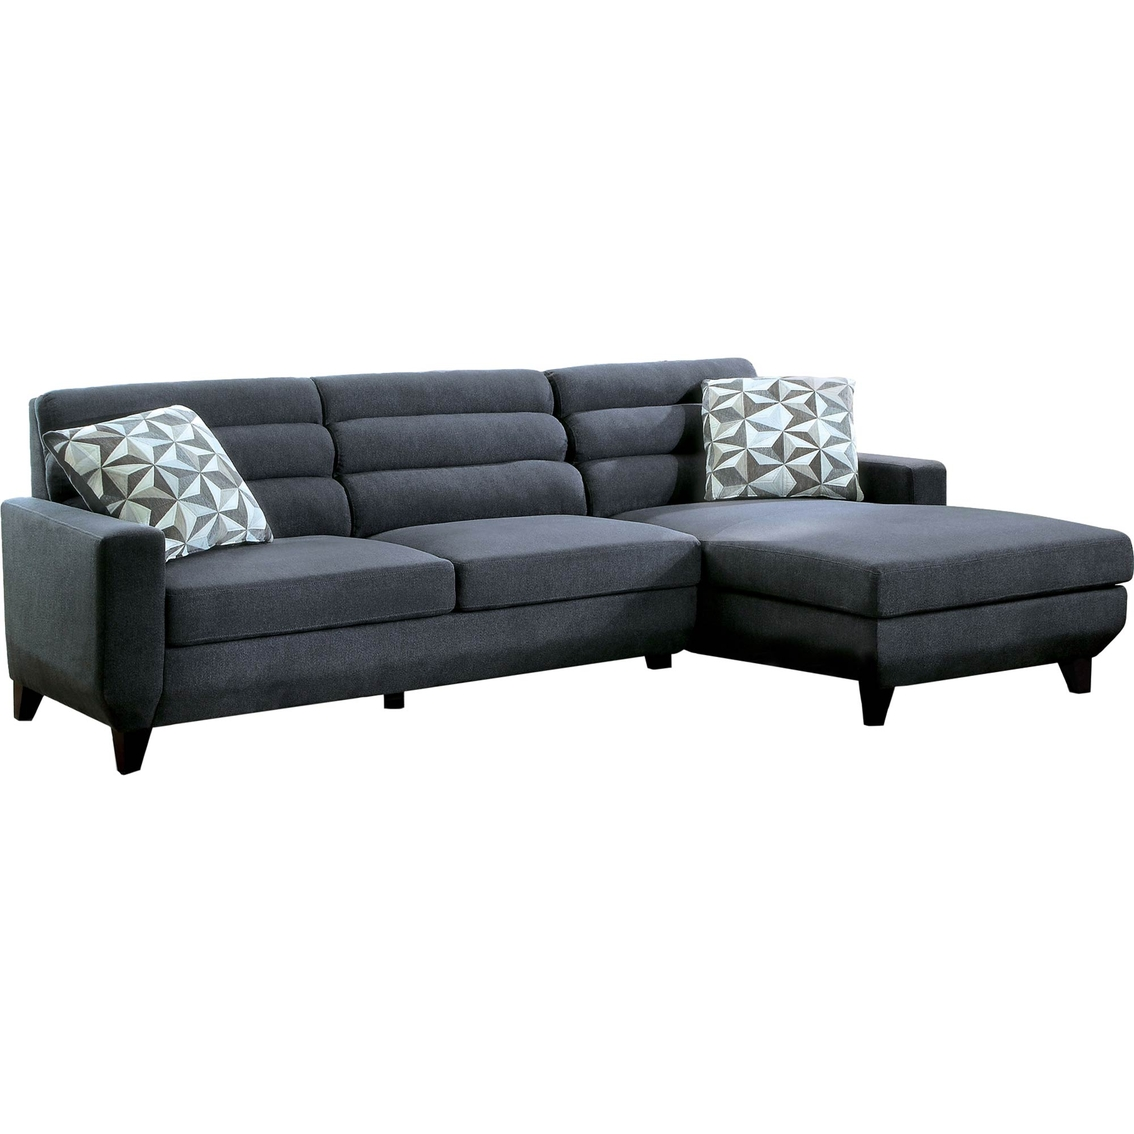 Jensen Sofa Bed Next Furniture Of America Jensen Sectional Sofas Couches Home